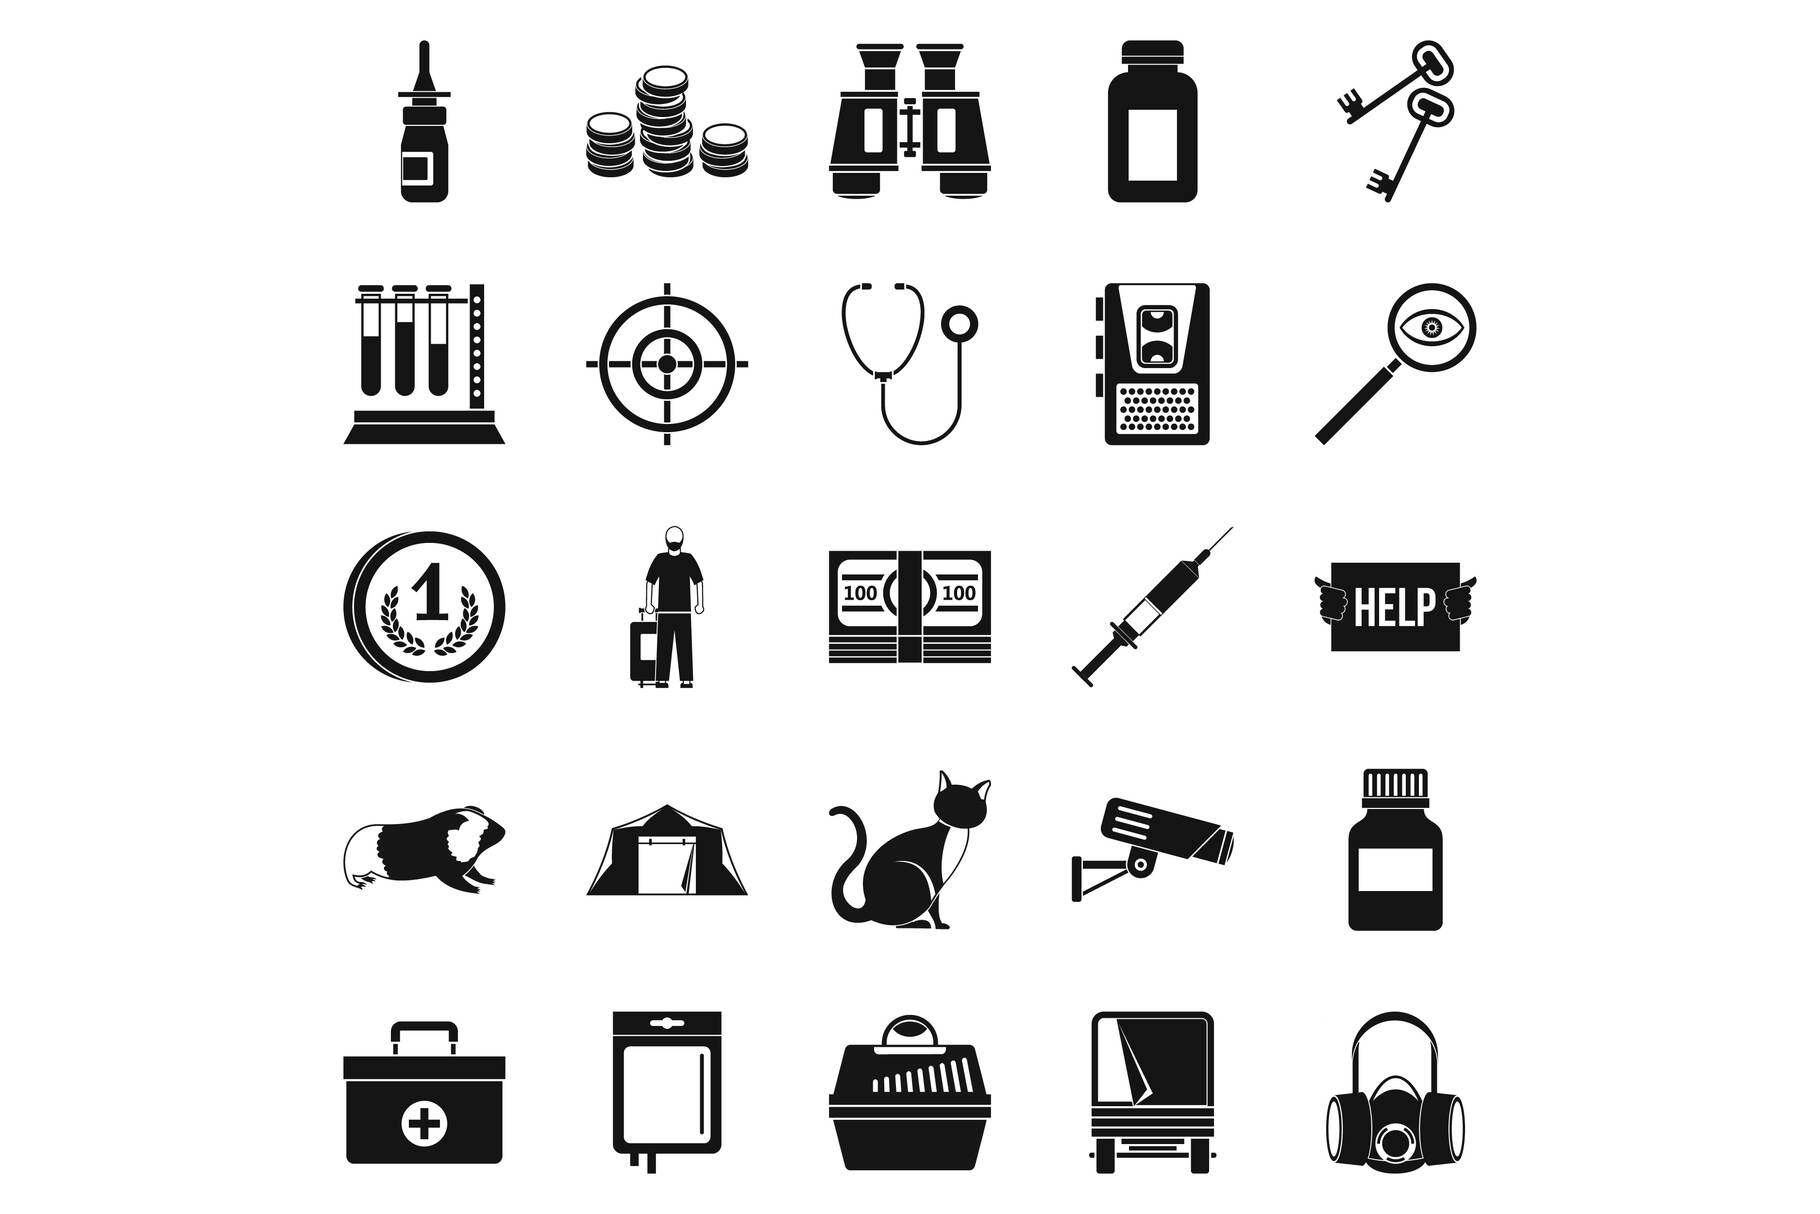 Chase icons set, simple style example image 1